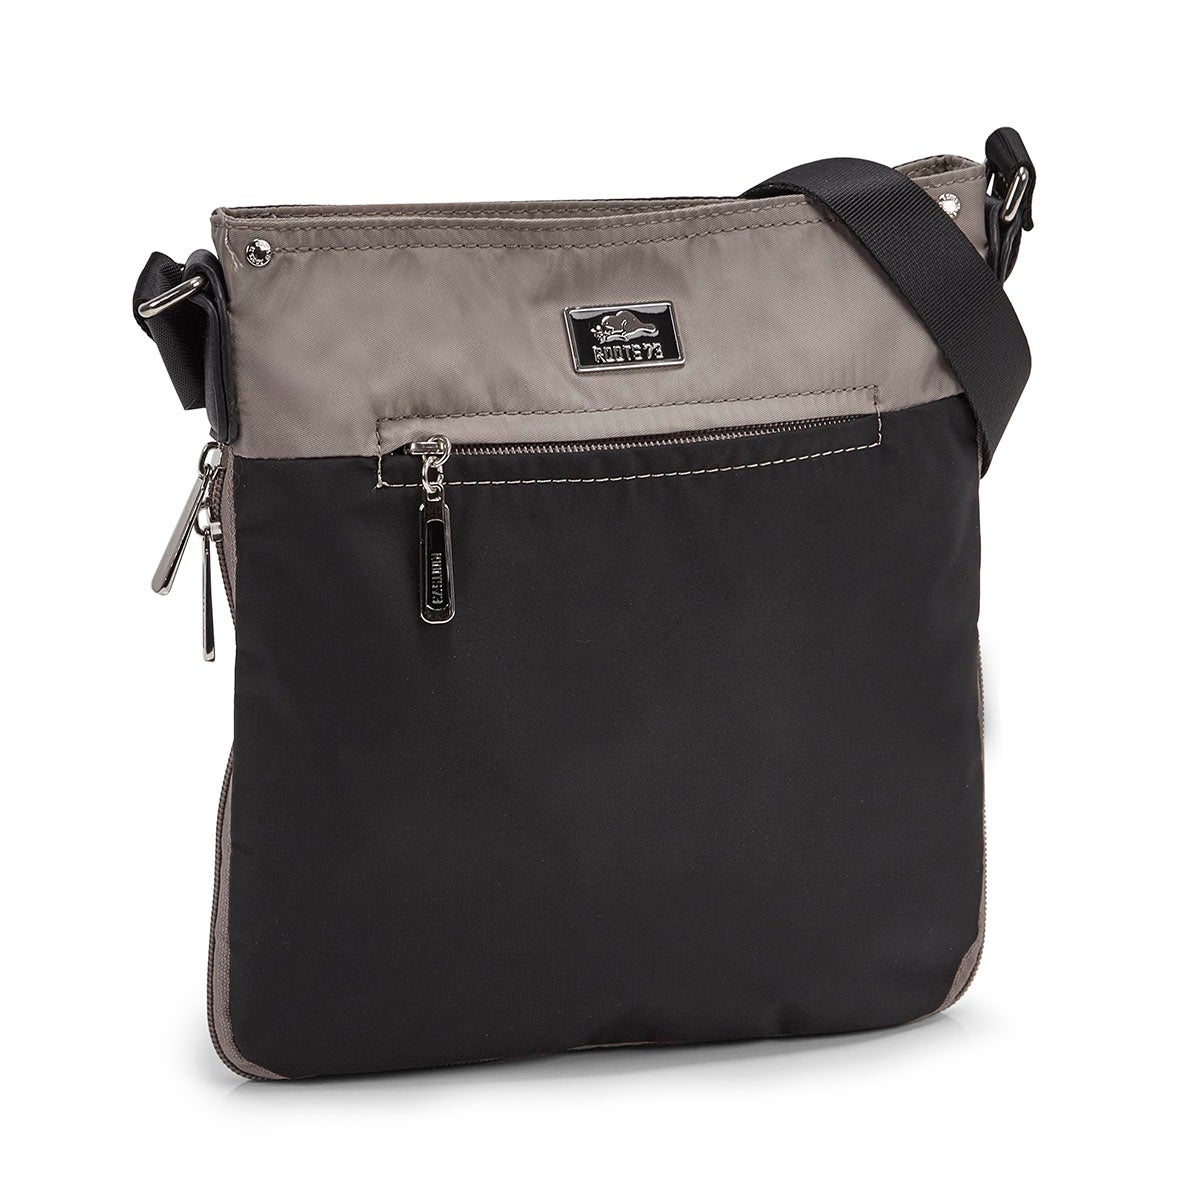 Lds tpe/blk north/south cross body bag